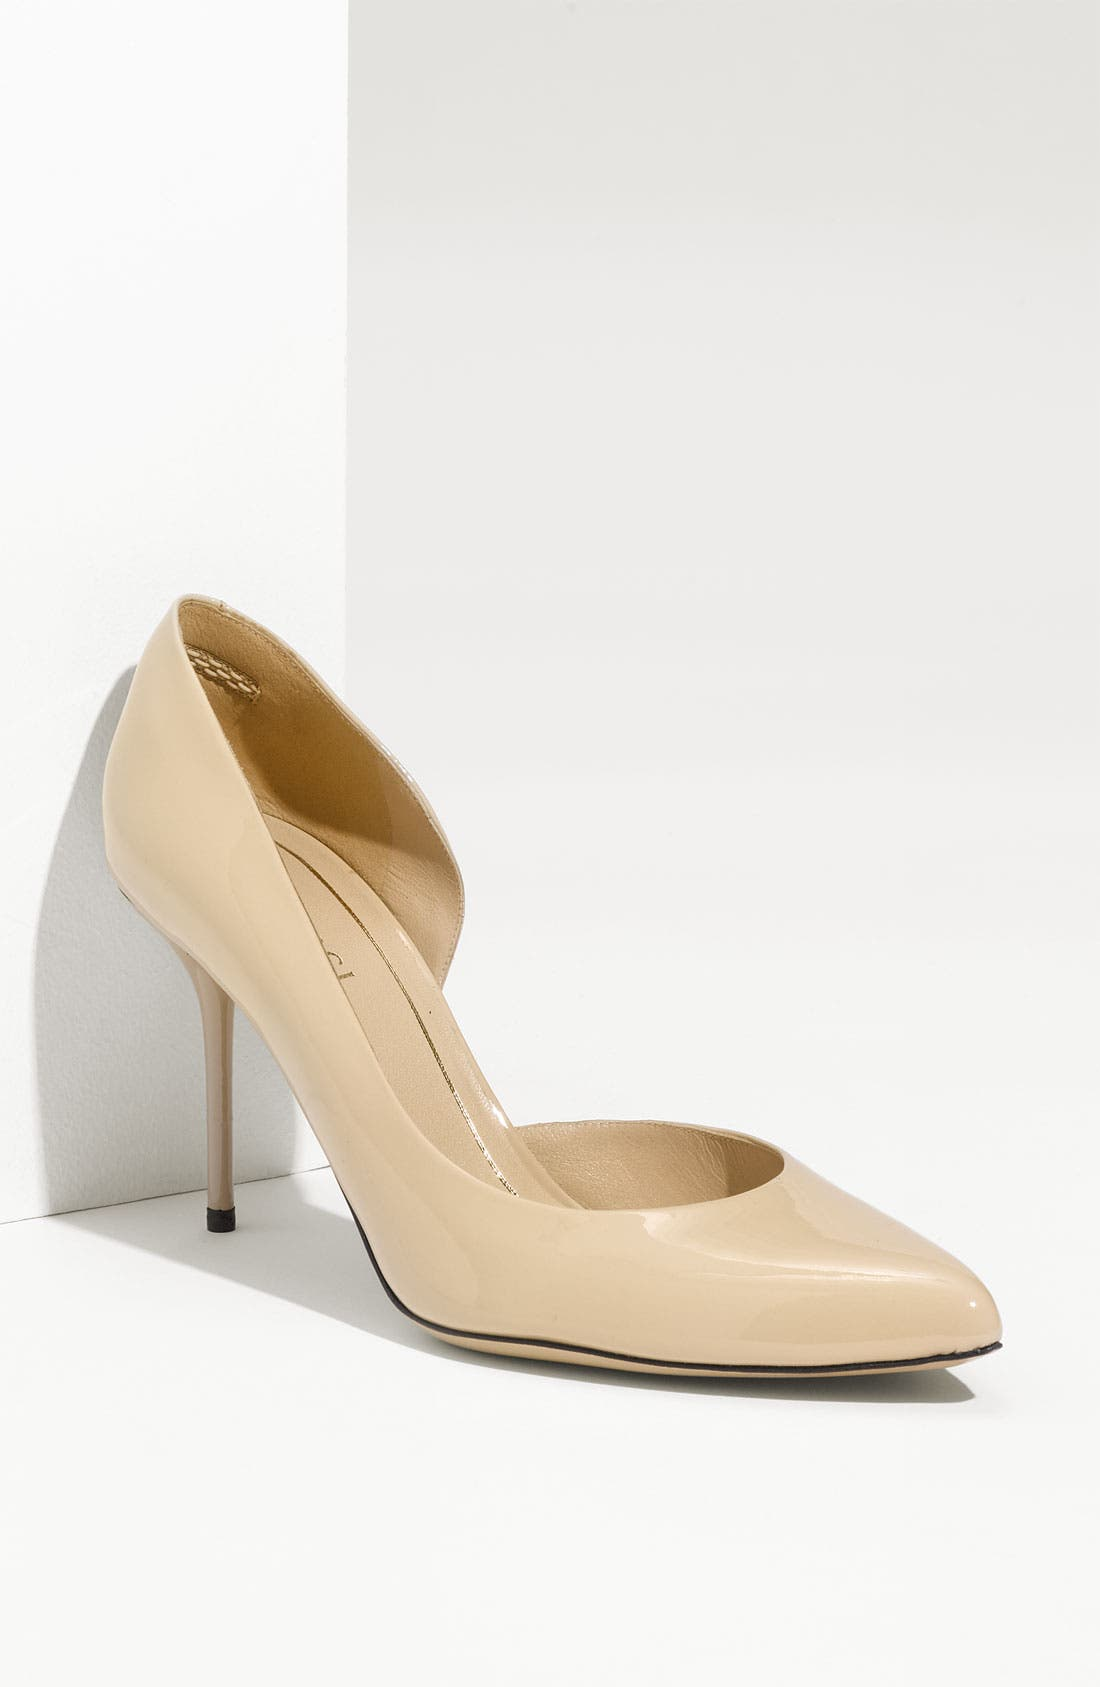 'Noah' d'Orsay Pump,                             Main thumbnail 1, color,                             Light Powder